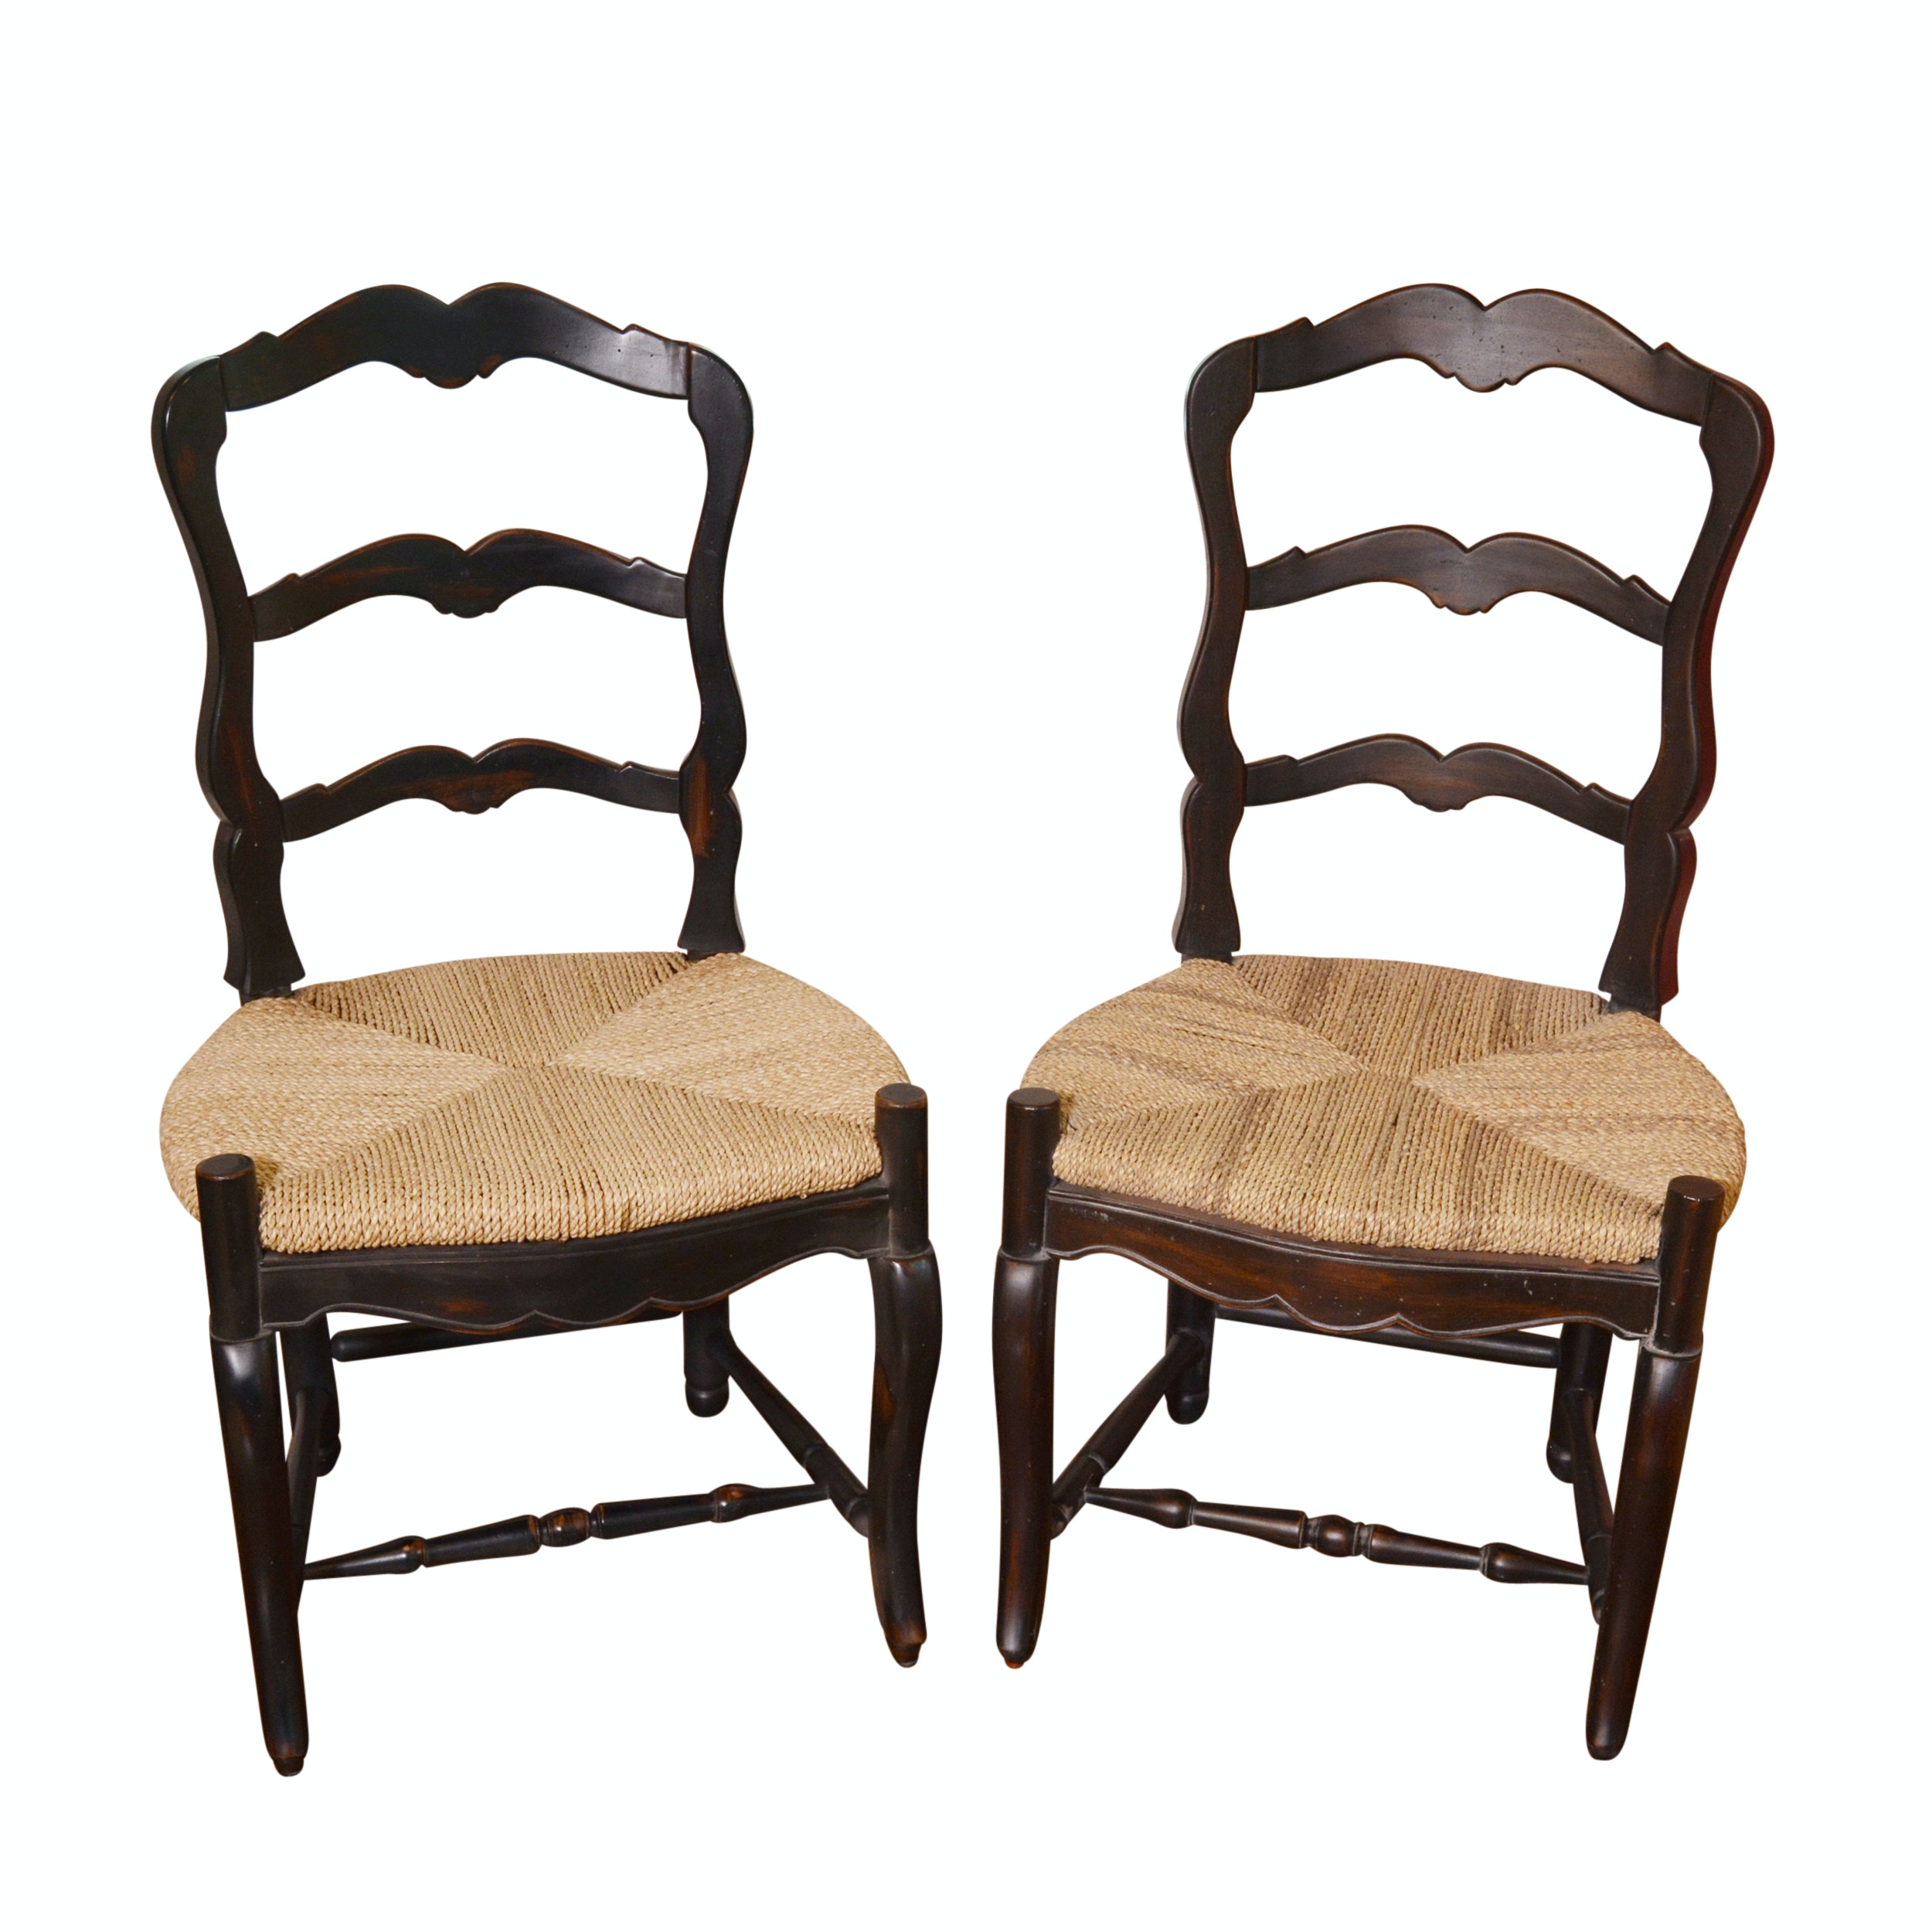 Merveilleux French Provincial Style Ladder Back Rush Seat Chairs By Marie Albert  Furnishings ...